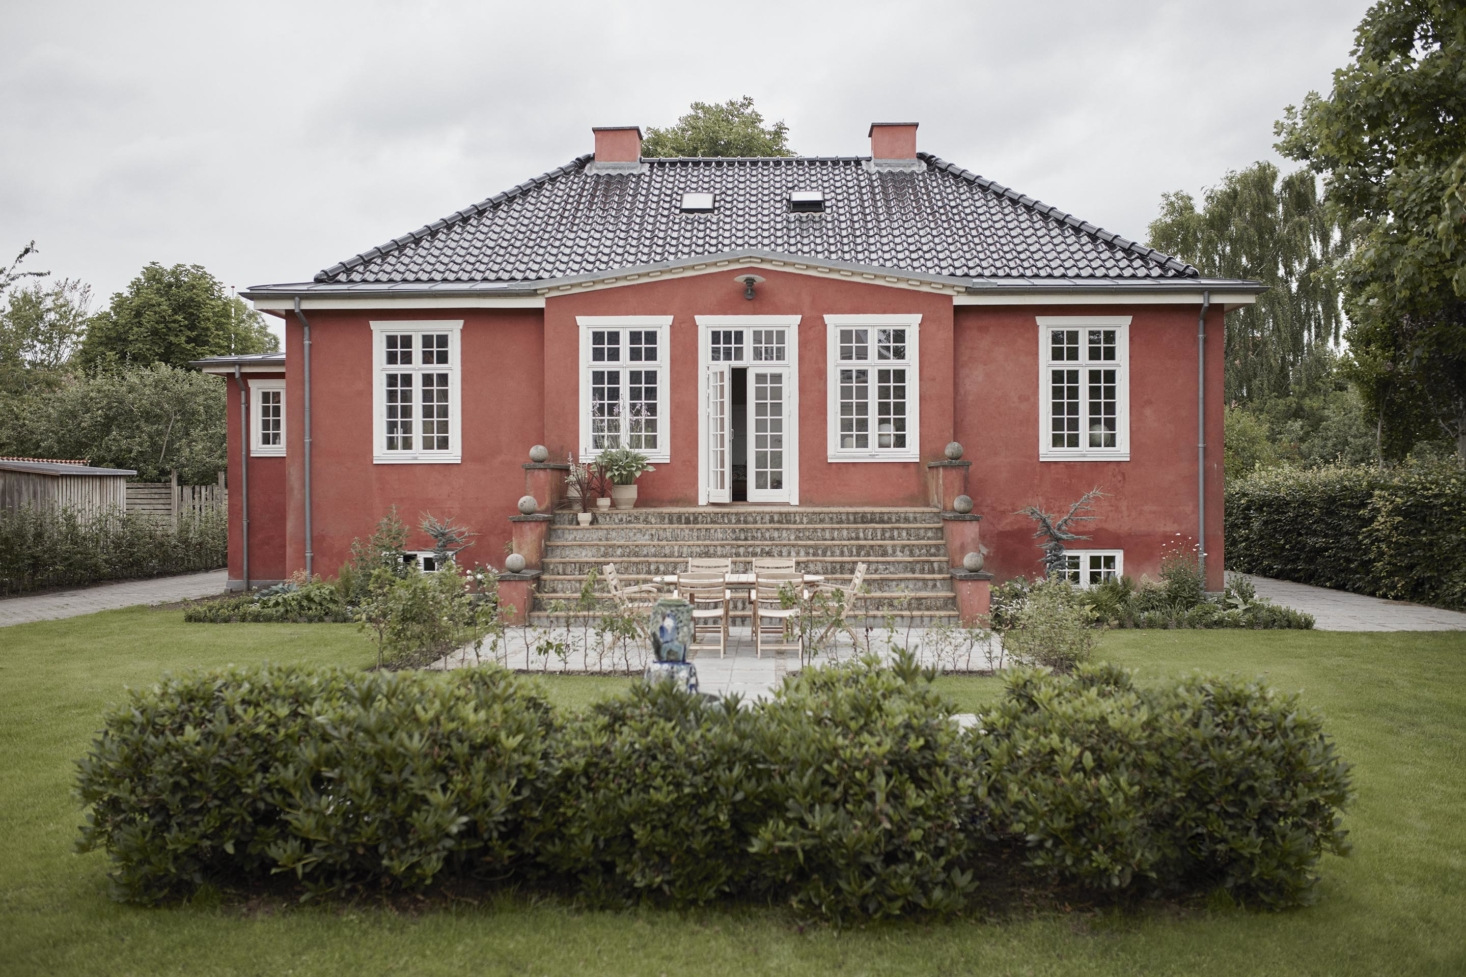 Little Pink House: A Creative Couple's Classic-with-a-Twist Home in Denmark